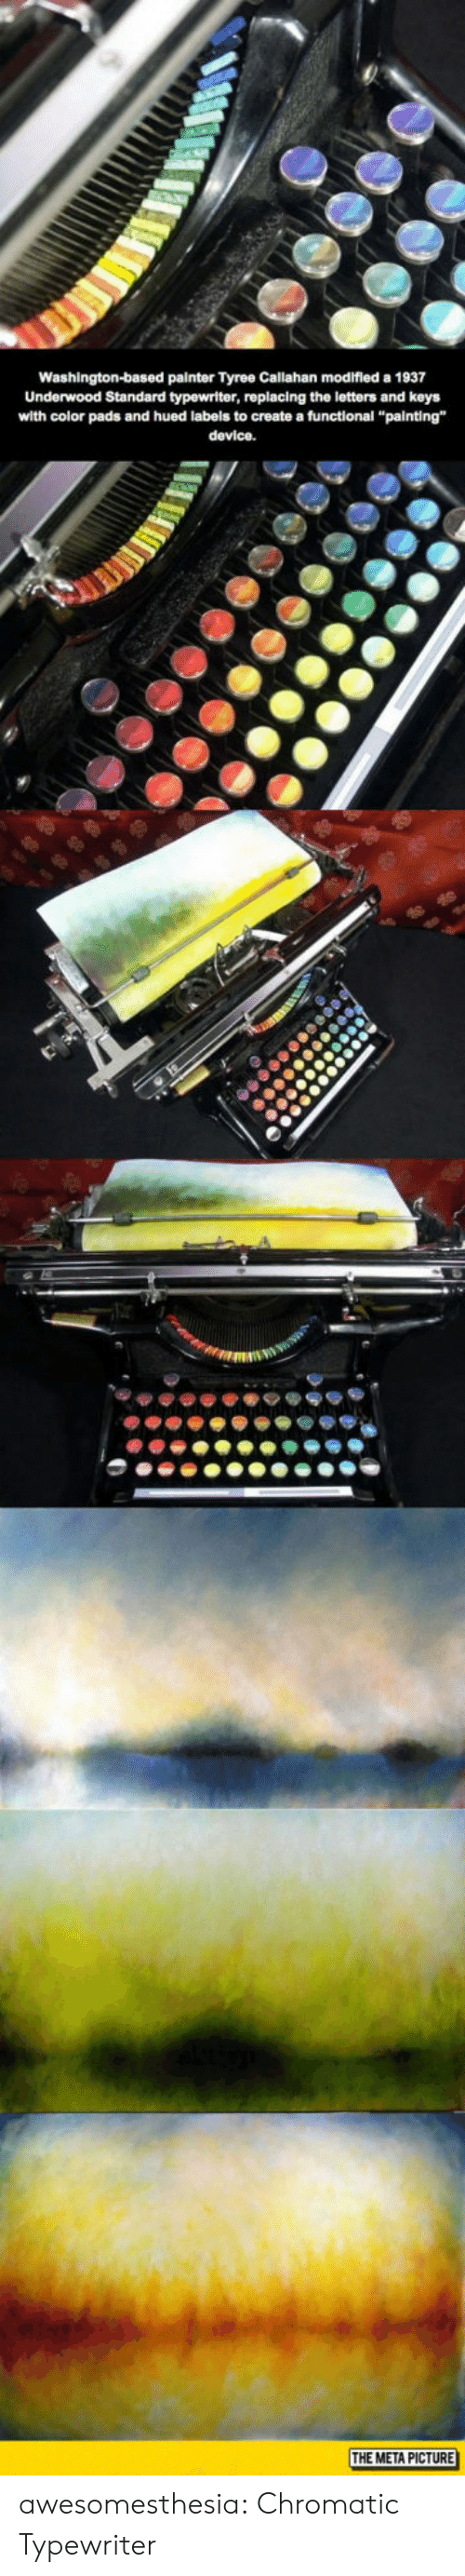 """Labels: Washington-based painter Tyree Callahan modifled a 1937  Underwood Standard typewriter, replacing the letters and keys  with color pads and hued labels to create a functional """"painting""""  device.  THE META PICTURE awesomesthesia:  Chromatic Typewriter"""